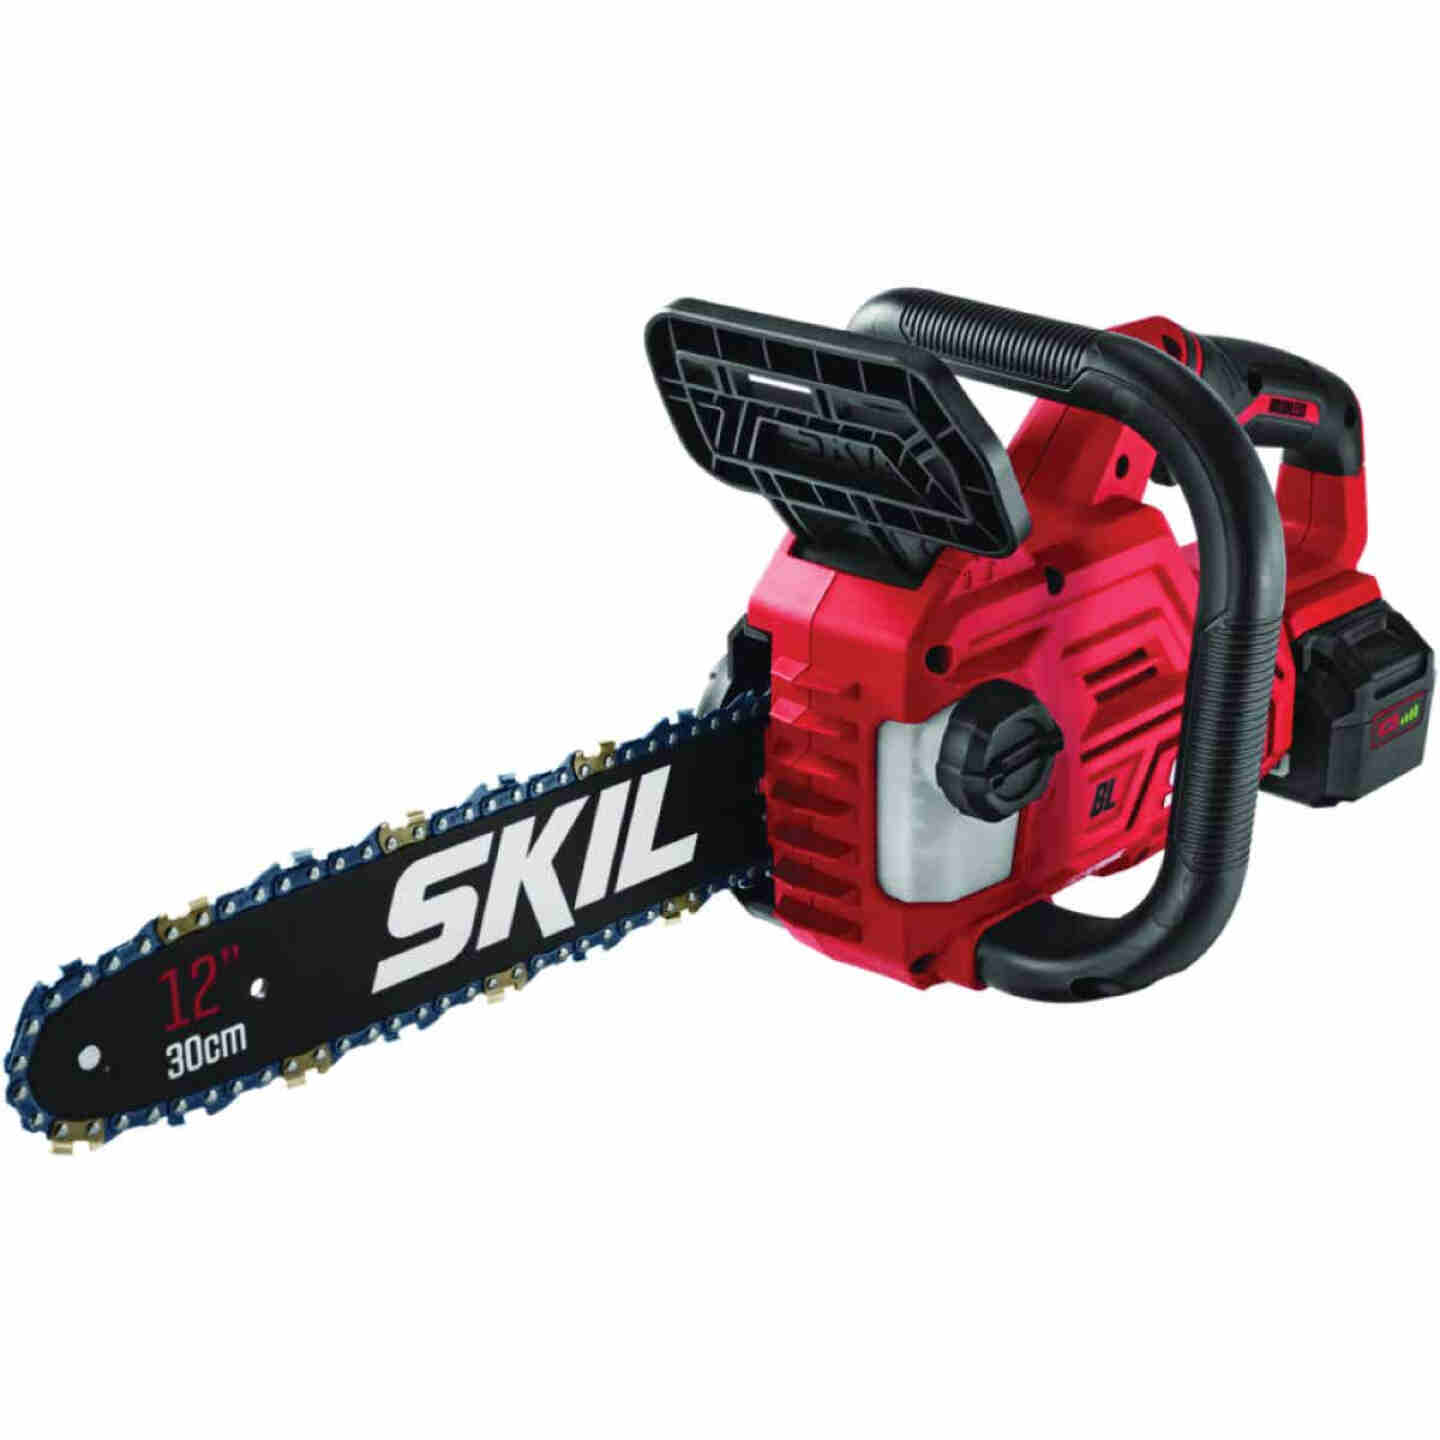 SKIL PWRCore 12 In. 20V Brushless Chainsaw Image 3